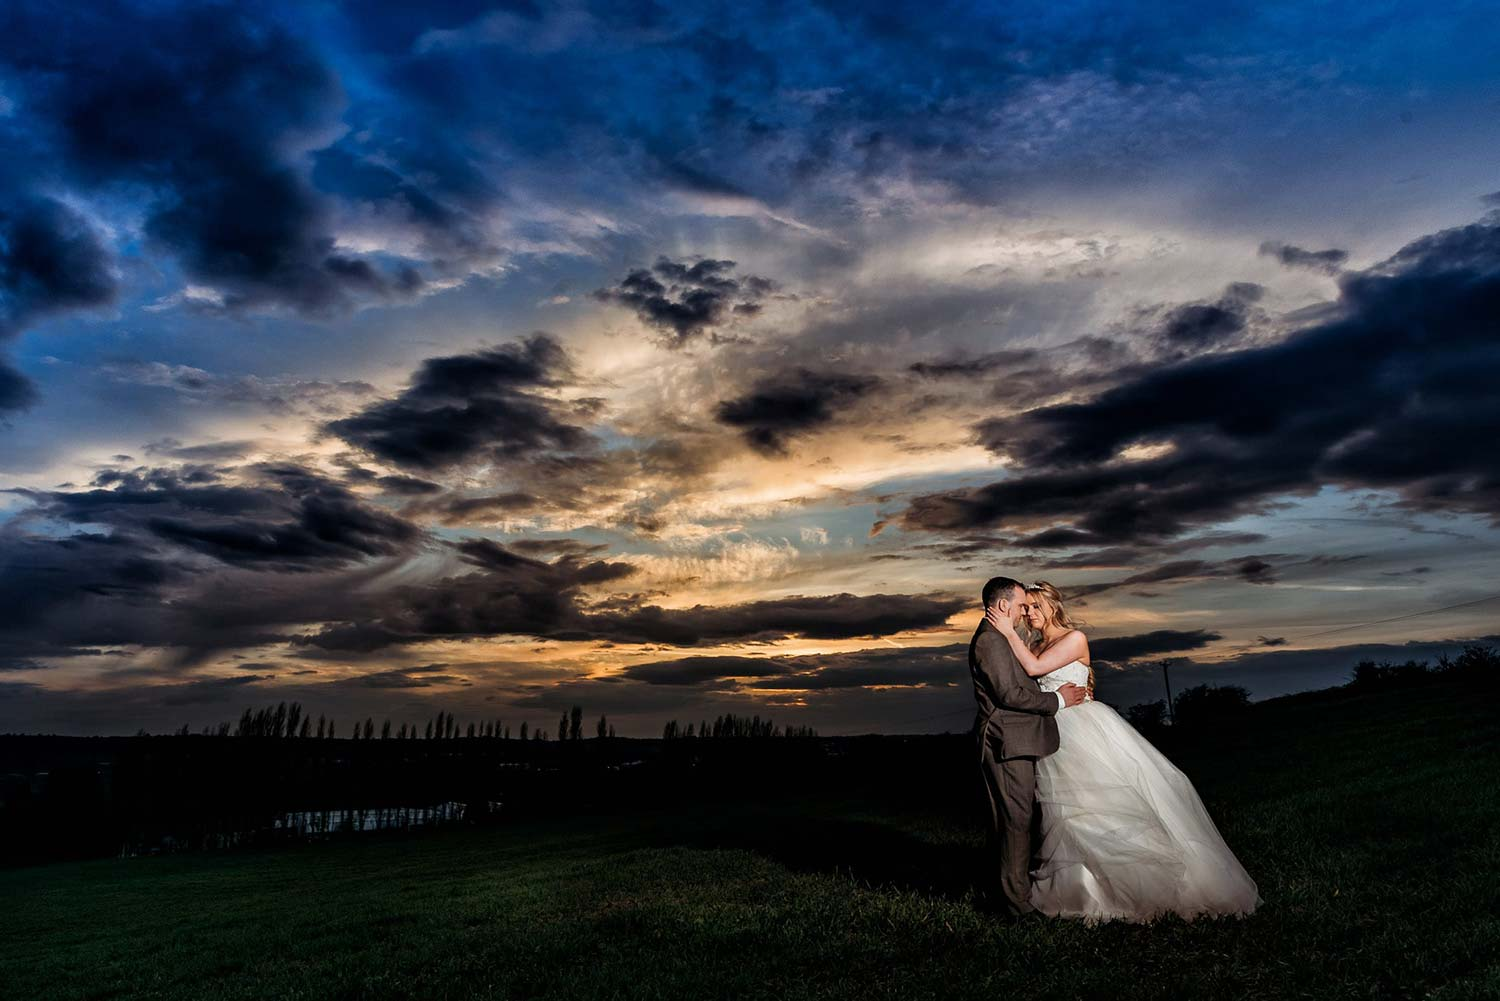 Sunset Wedding Photo at Swancar Farm taken in the field behind this stunning venue